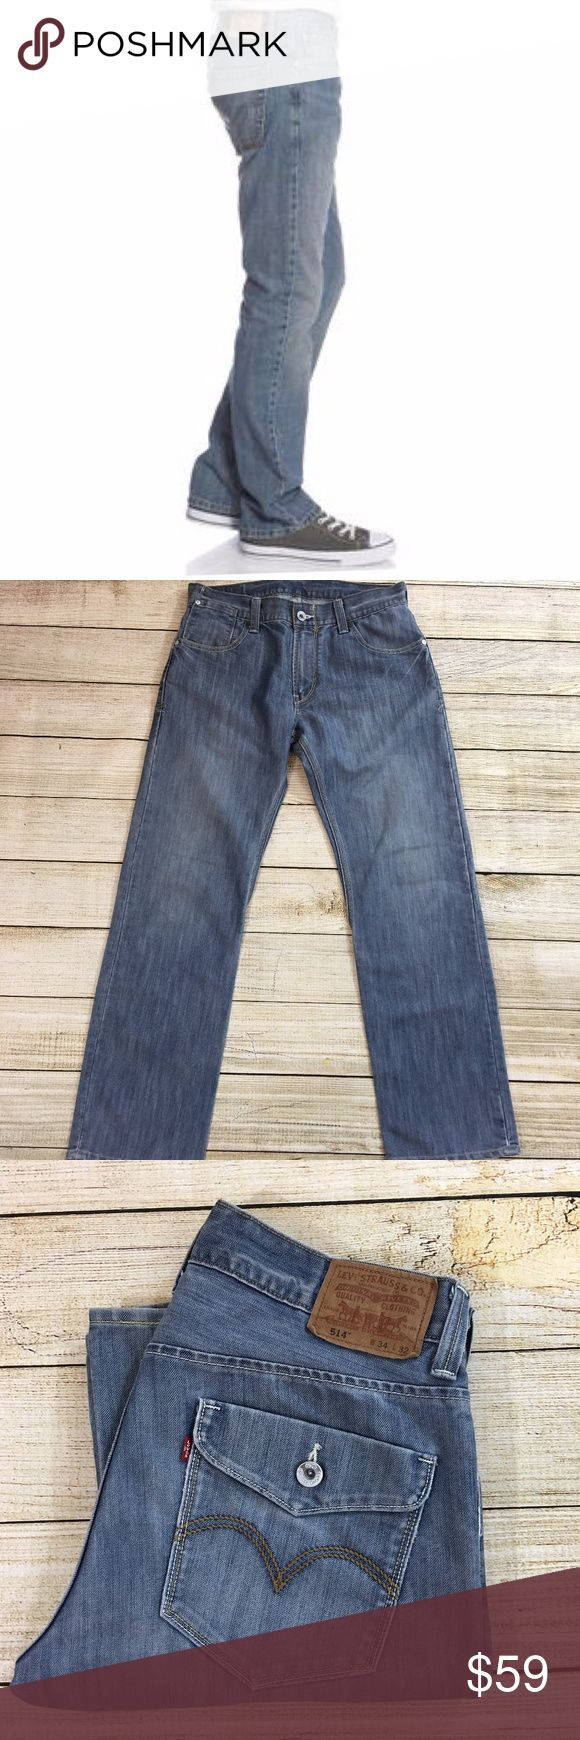 Levi's 514 Slim Straight Jeans 34 x 32 Inseam: 32 inches Lay Flat Waist: 16 inches Lay Flat Leg Opening: 8.5 inches Fabric: 54% cotton, 48% polyester Description: like new condition  Bundle & Save: 10% off or more  NO TRADES Shipping within 24 hours Levi's Jeans Slim Straight